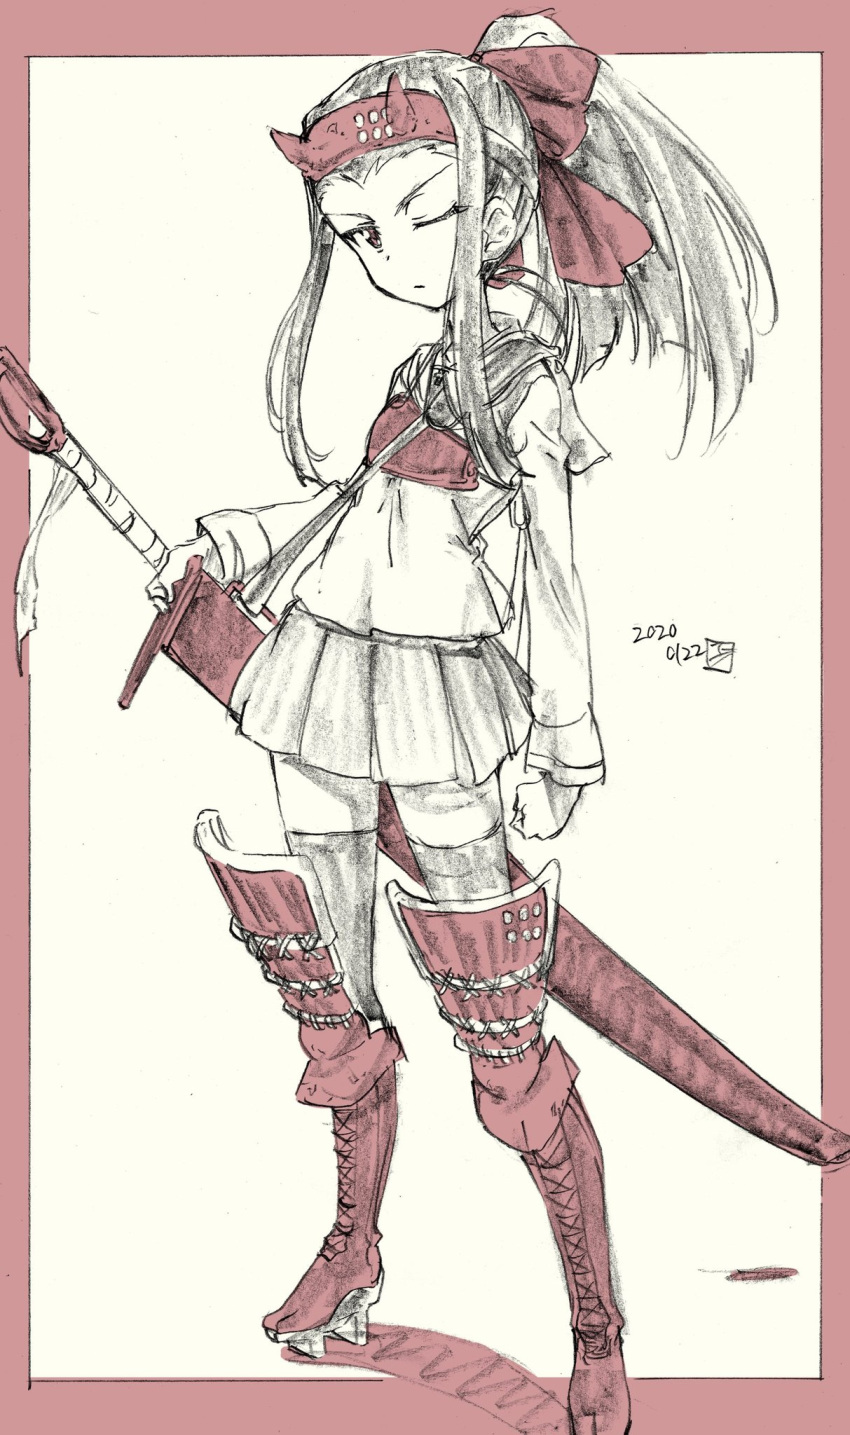 1girl armor artist_name bad_id bad_twitter_id blouse boots clenched_hand closed_mouth commentary cross-laced_footwear dated erakin fake_horns frown full_body geta girls_und_panzer graphite_(medium) hair_up headband highres holding holding_sword holding_weapon horns japanese_armor lace-up_boots limited_palette long_hair long_sleeves looking_at_viewer miniskirt muneate neckerchief one_eye_closed oni_horns ooarai_school_uniform pleated_skirt ponytail reverse_grip saemonza_(girls_und_panzer) sailor_collar school_uniform serafuku signature sketch skirt solo standing straight_hair sword thigh-highs thigh_boots traditional_media weapon